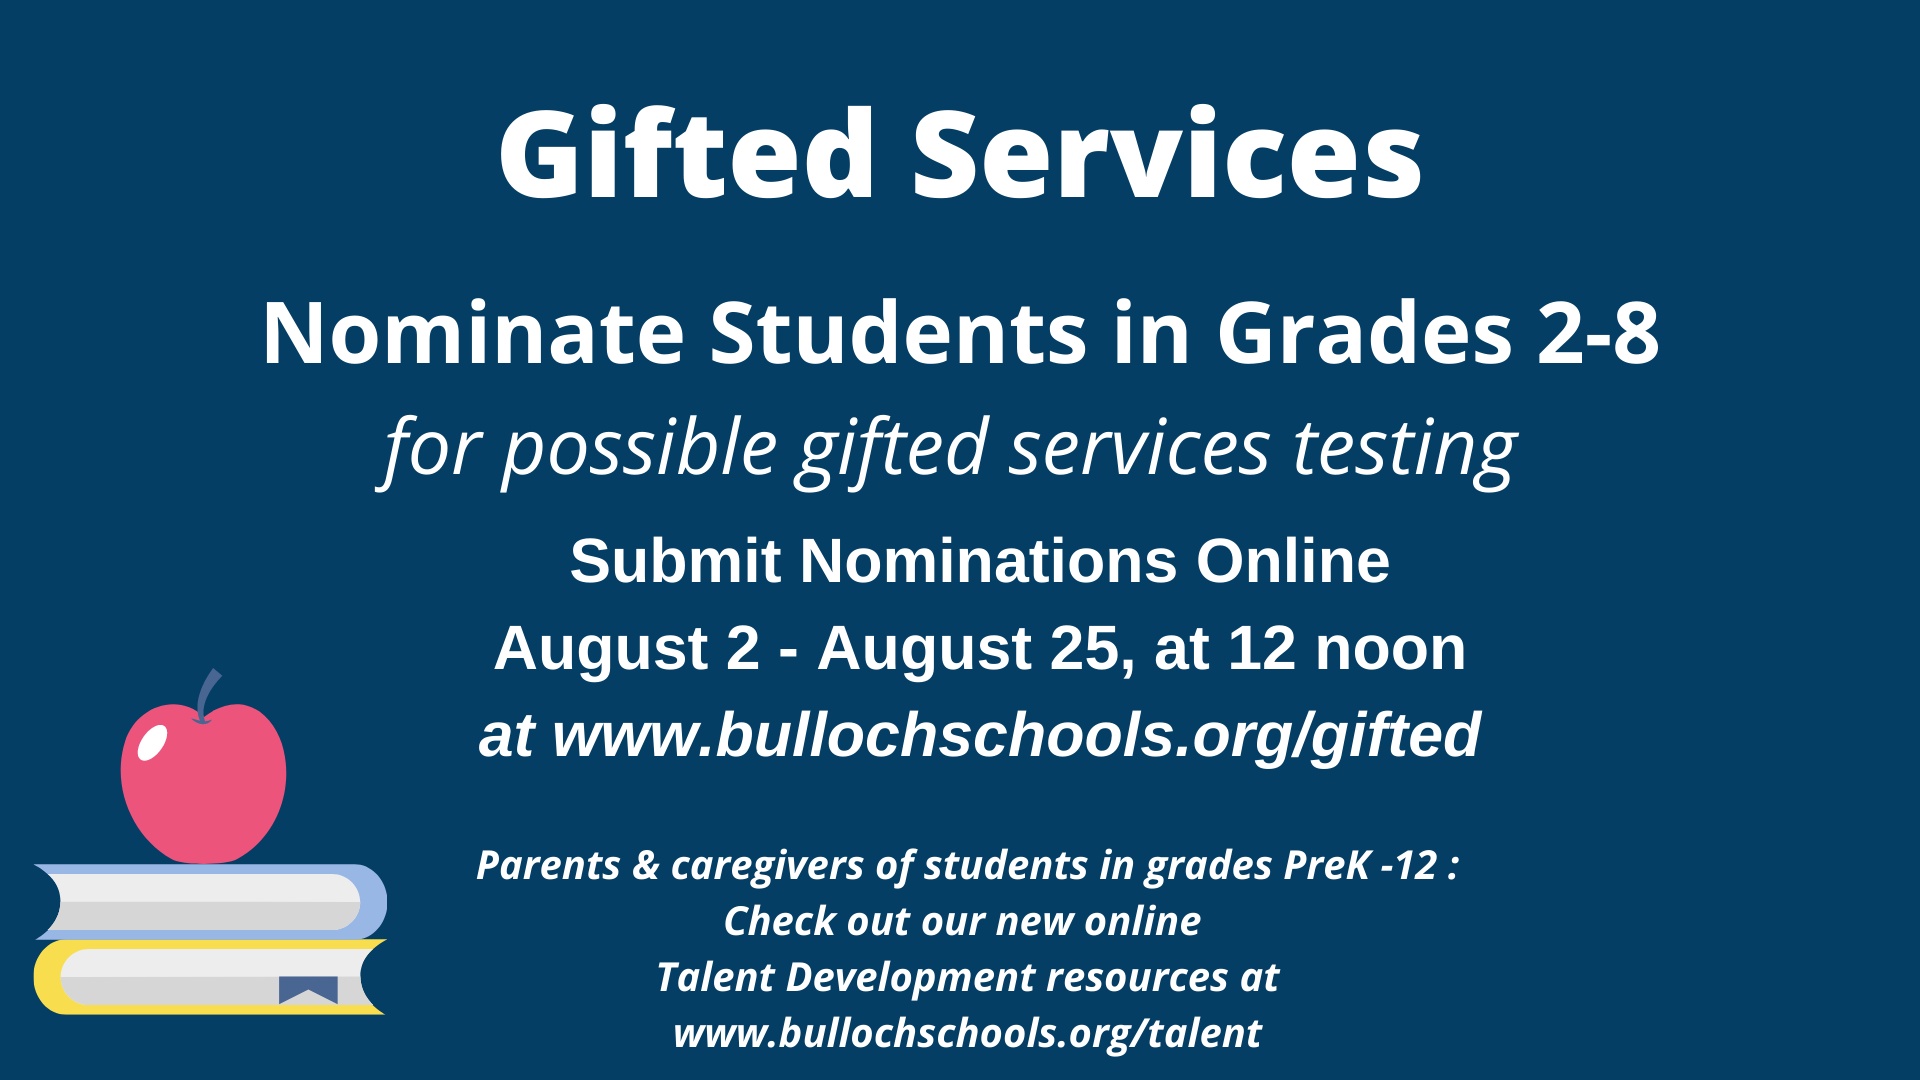 Gifted Services nominations